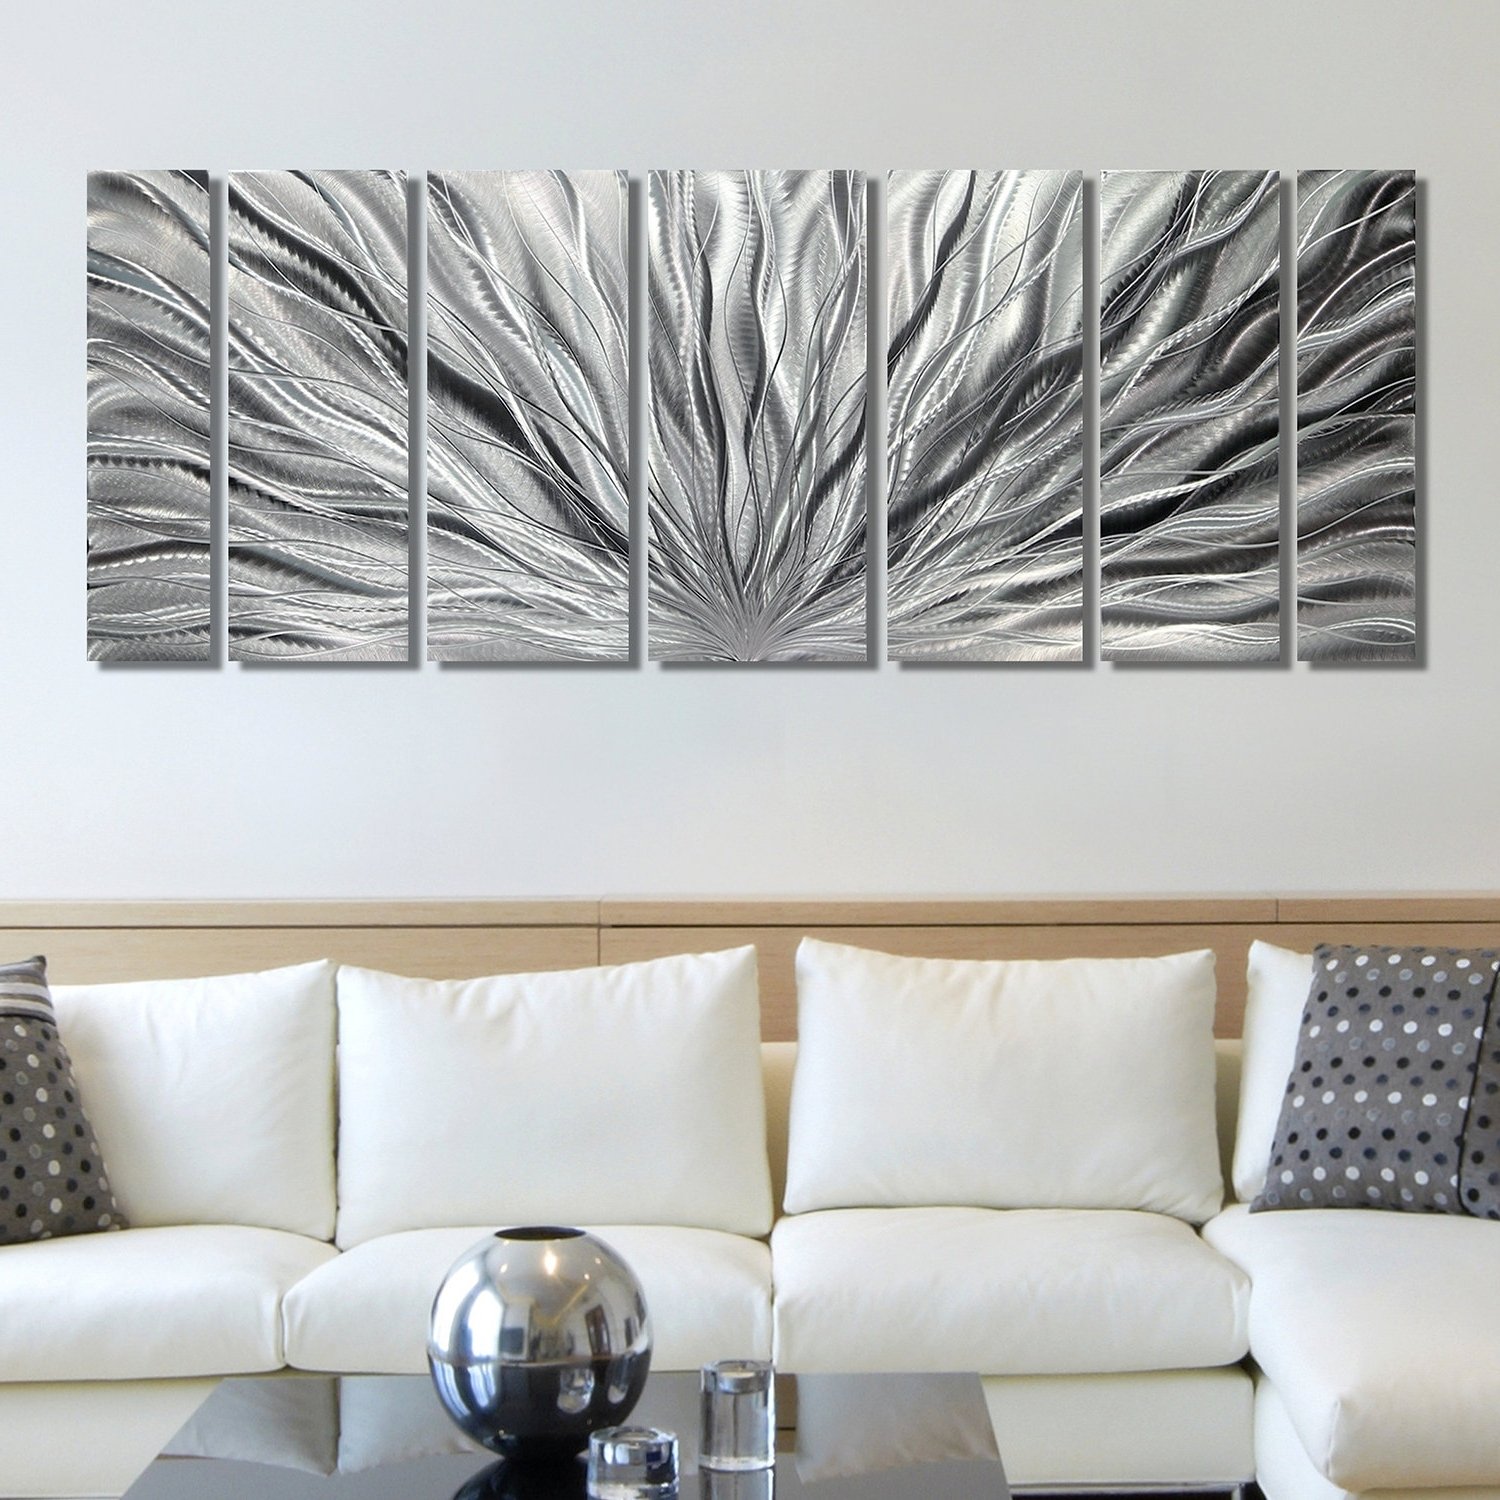 Silver Wall Art Intended For Newest Silver Wall Art Cool Wall Decor On Sale – Wall Decoration And Wall (View 13 of 20)